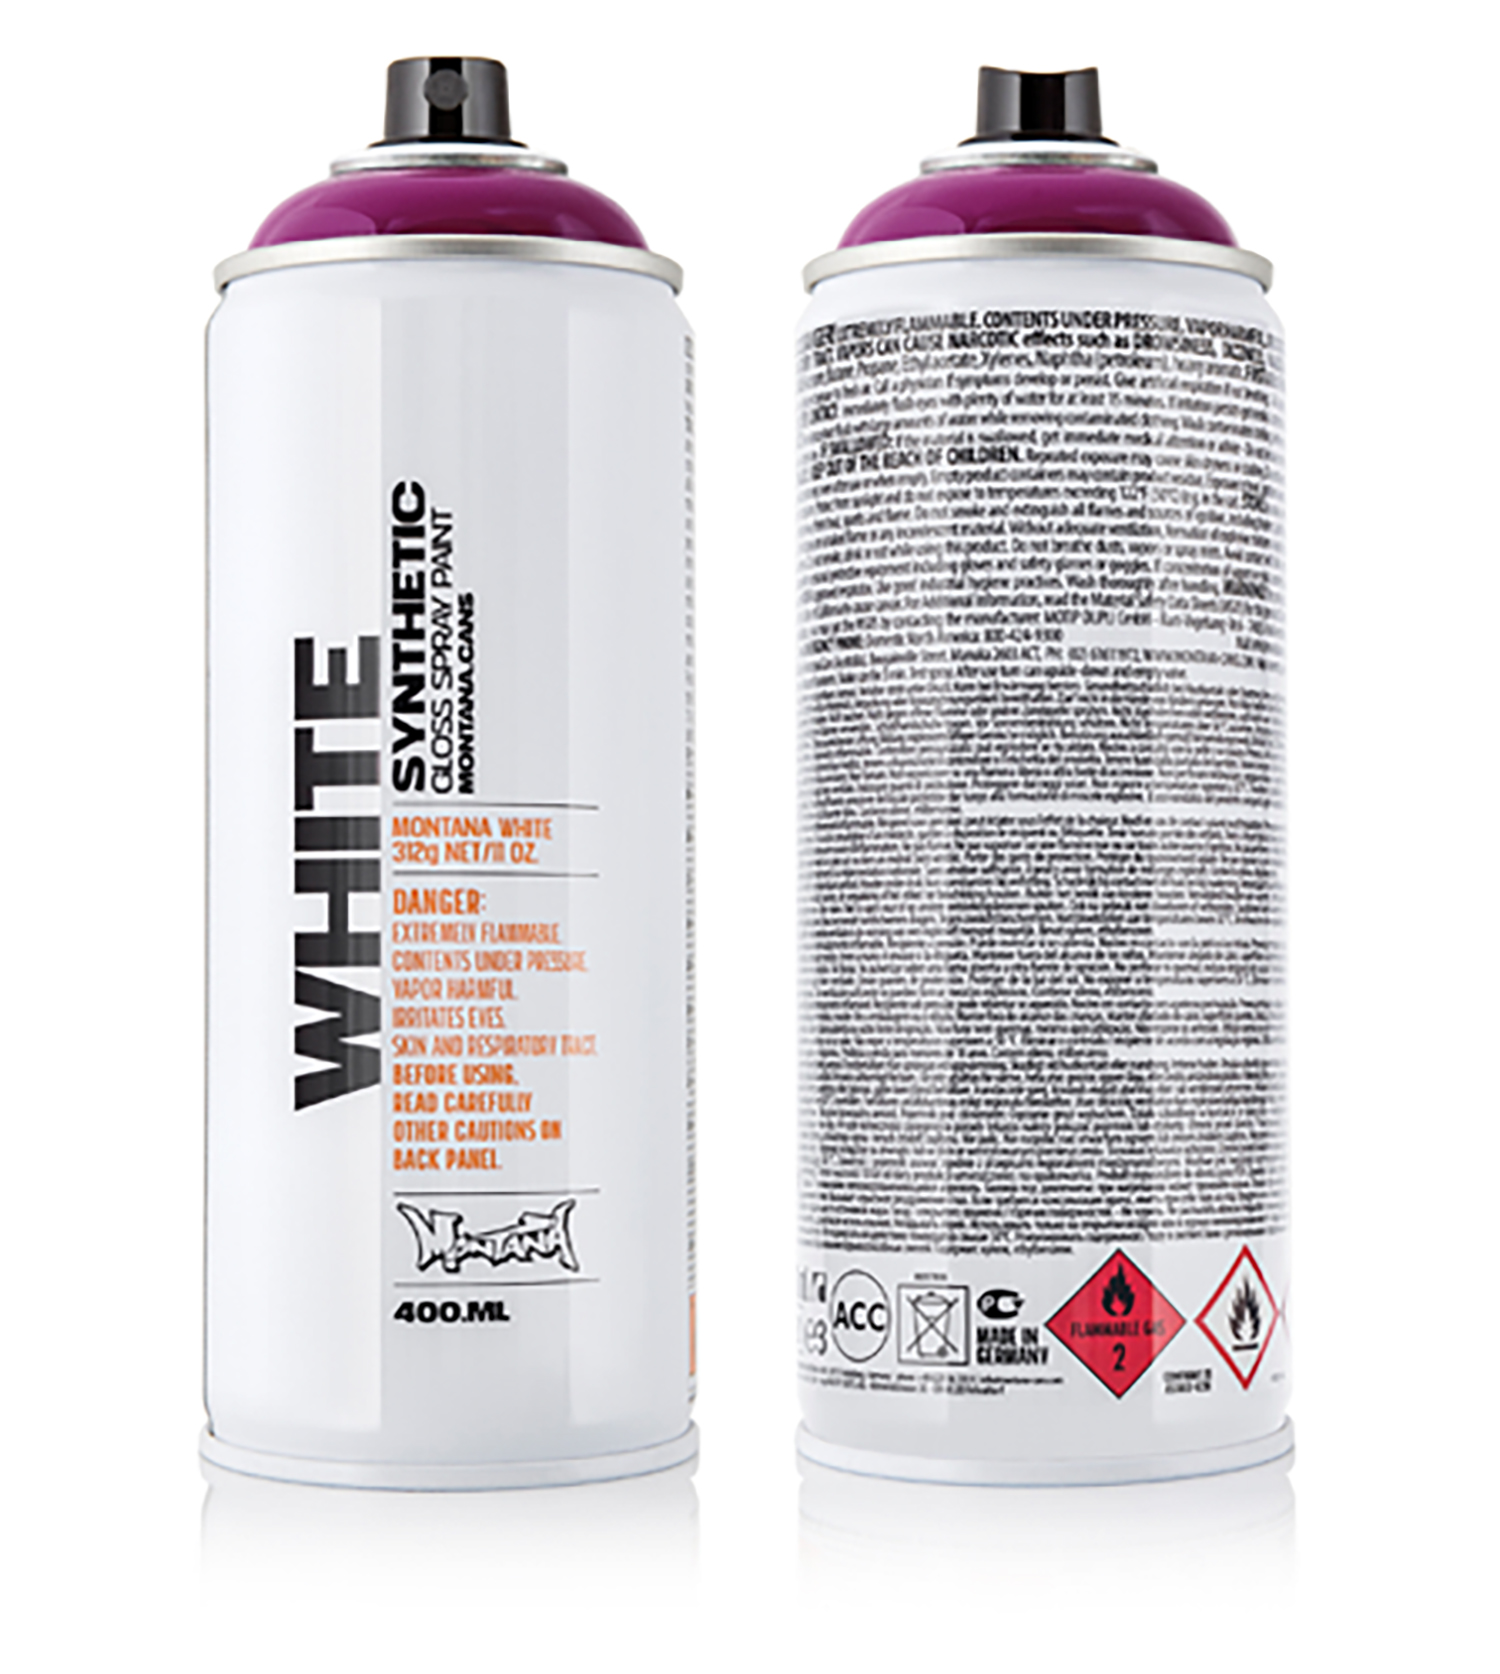 MONTANA-WHITE-SPRAY-400ML-3140